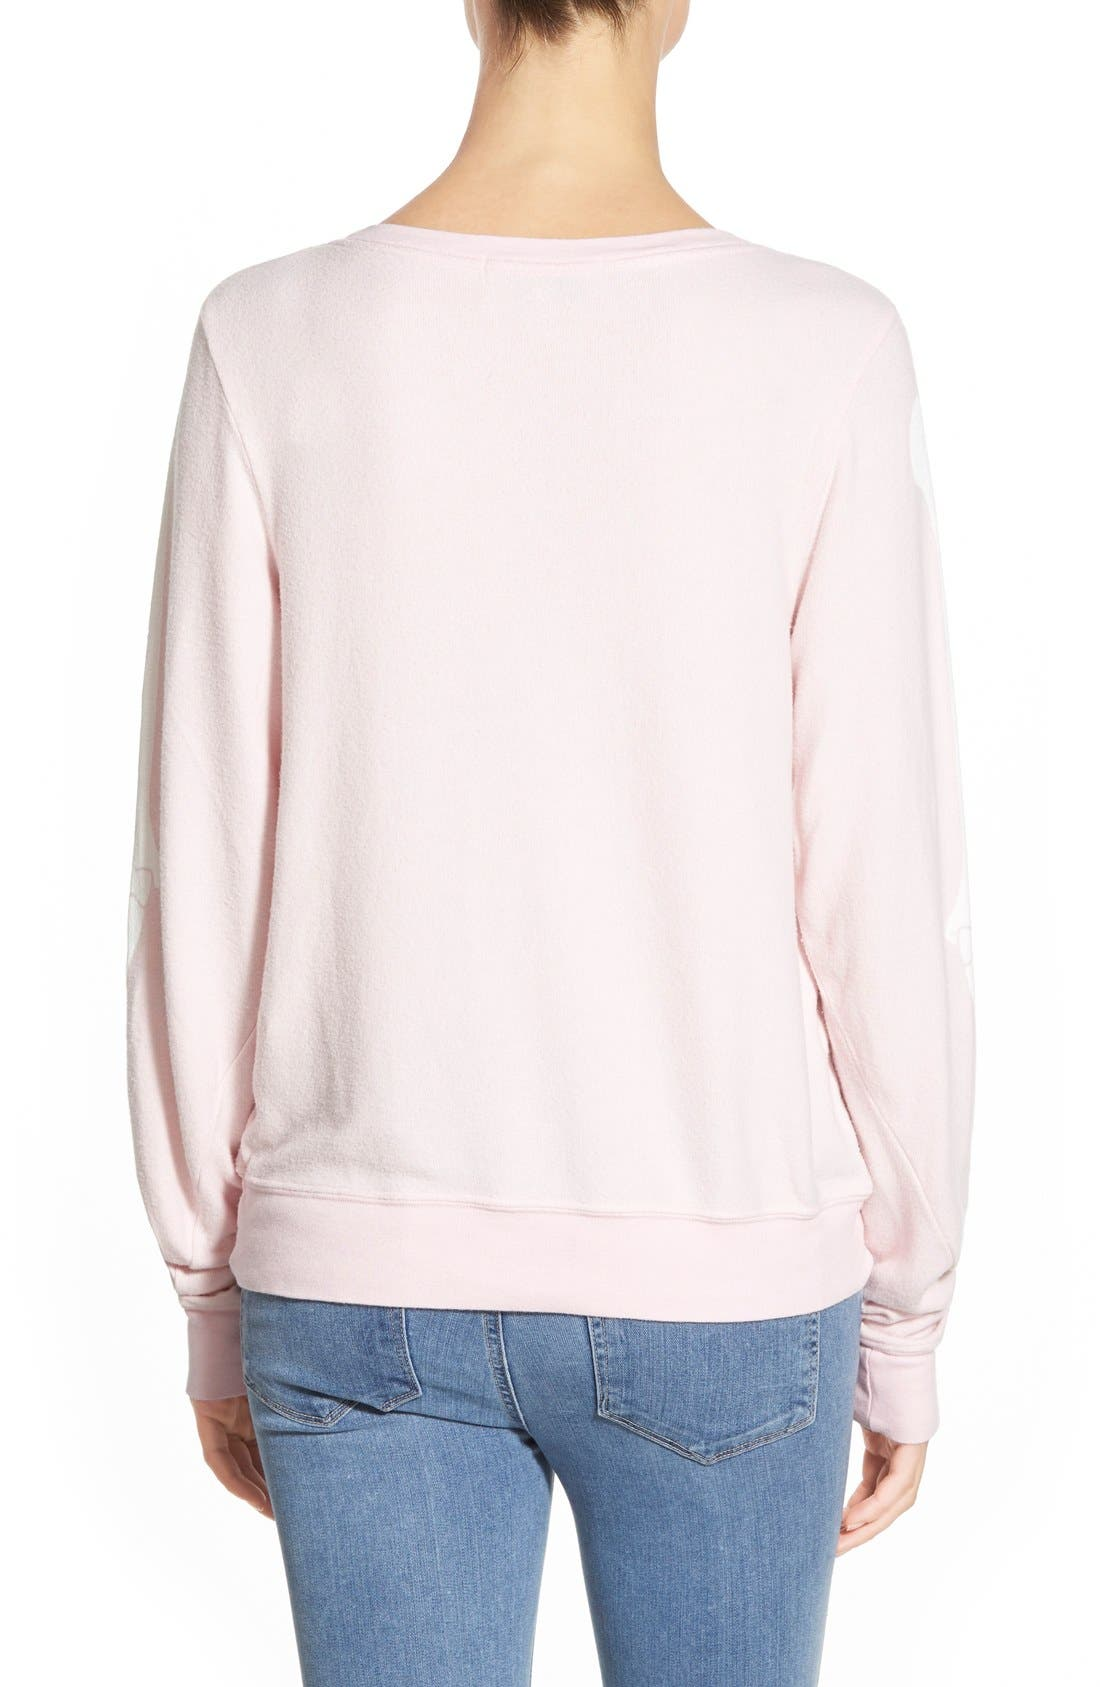 Alternate Image 3  - Wildfox 'Inside Out' Long Sleeve Sweatshirt